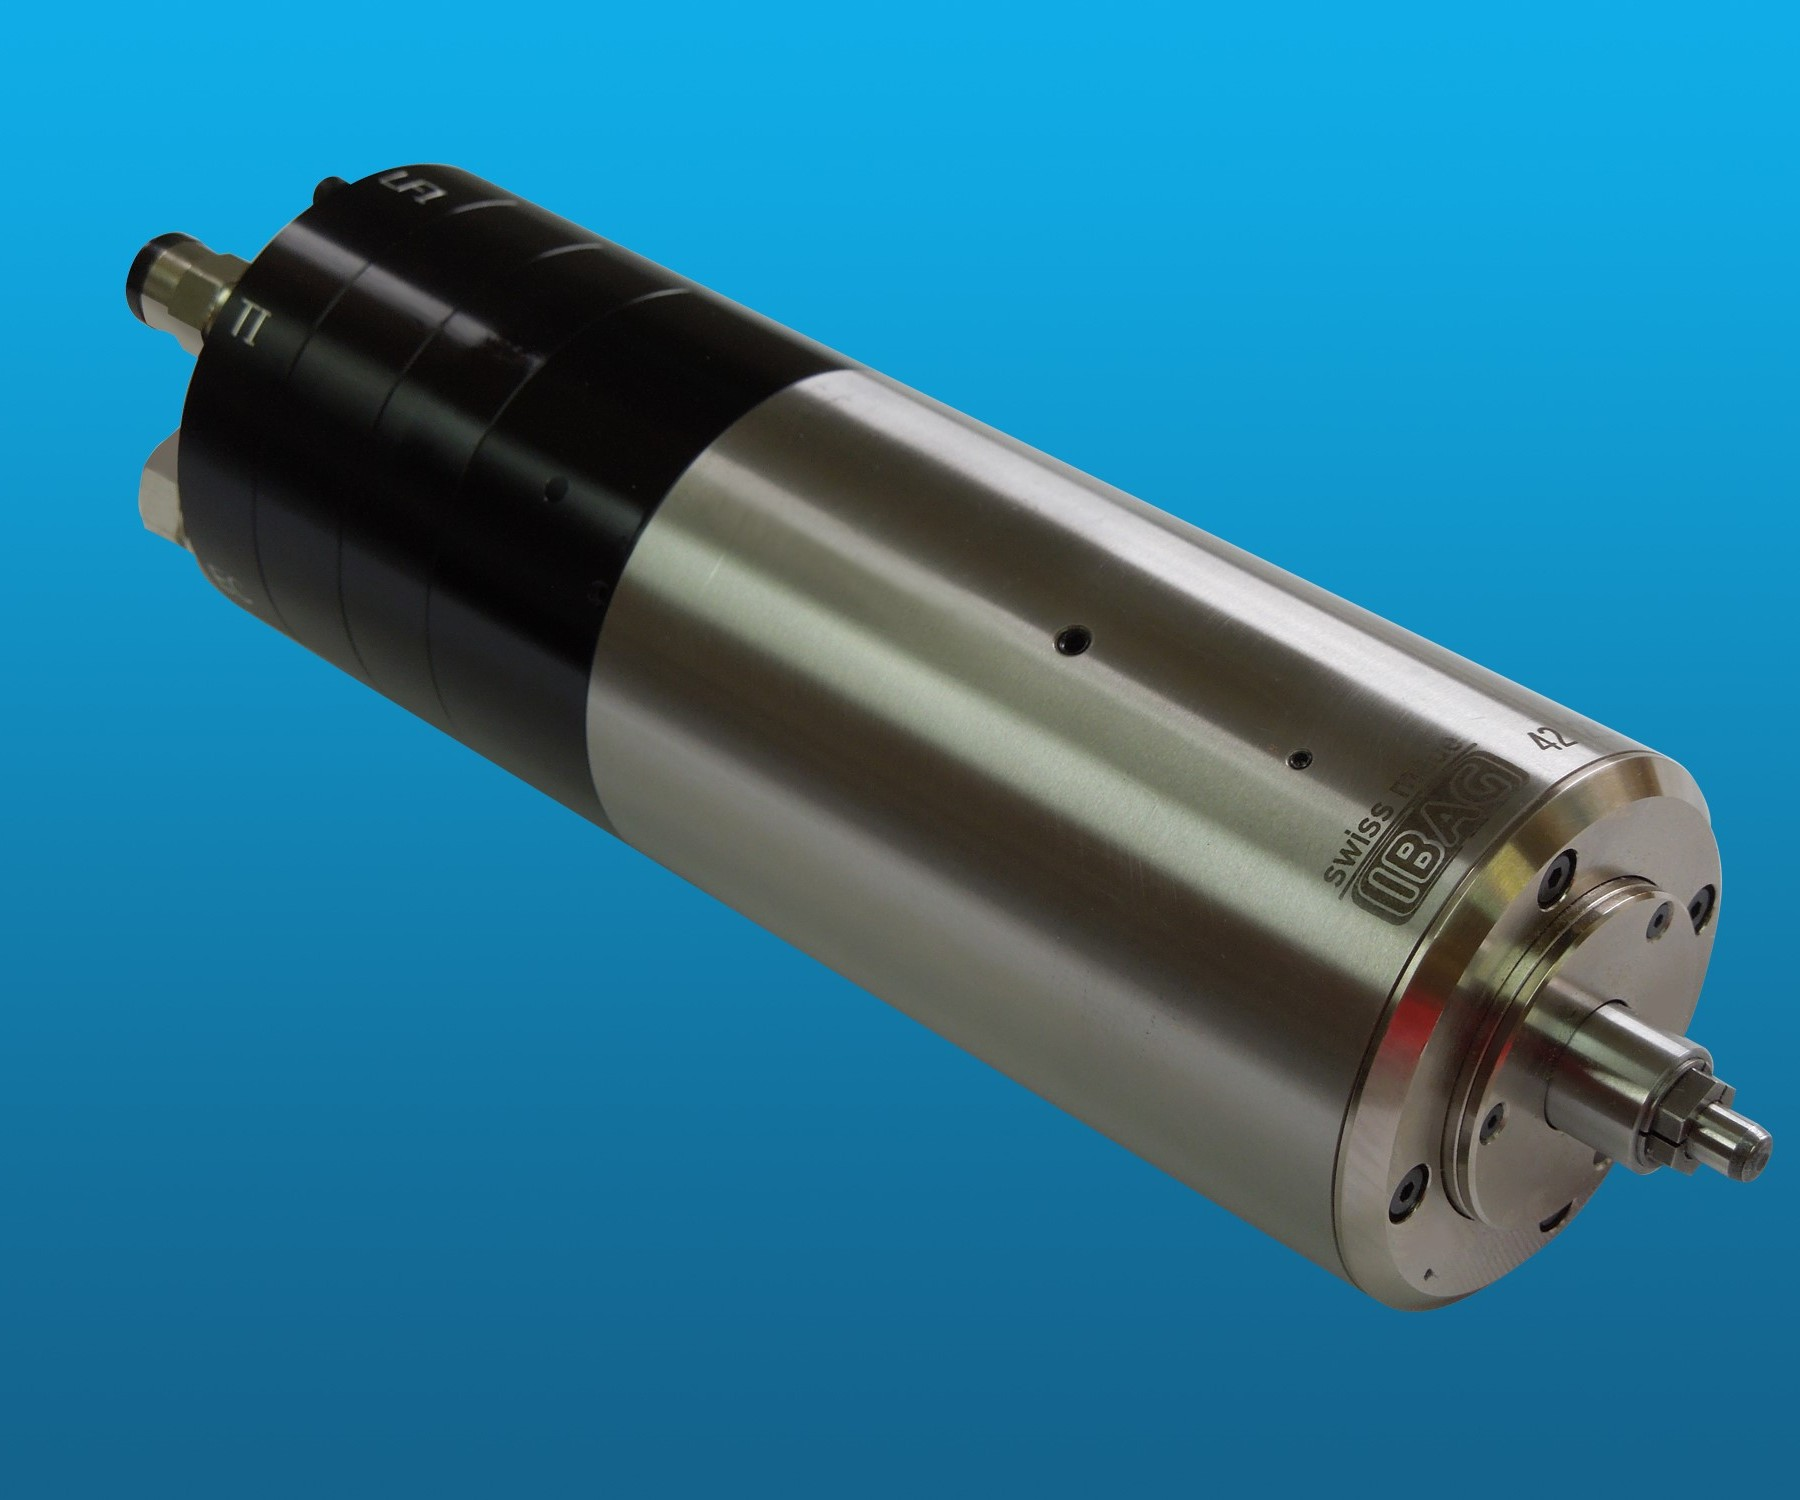 IBAG North America will display its series of high-speed spindles at IMTS 2018.